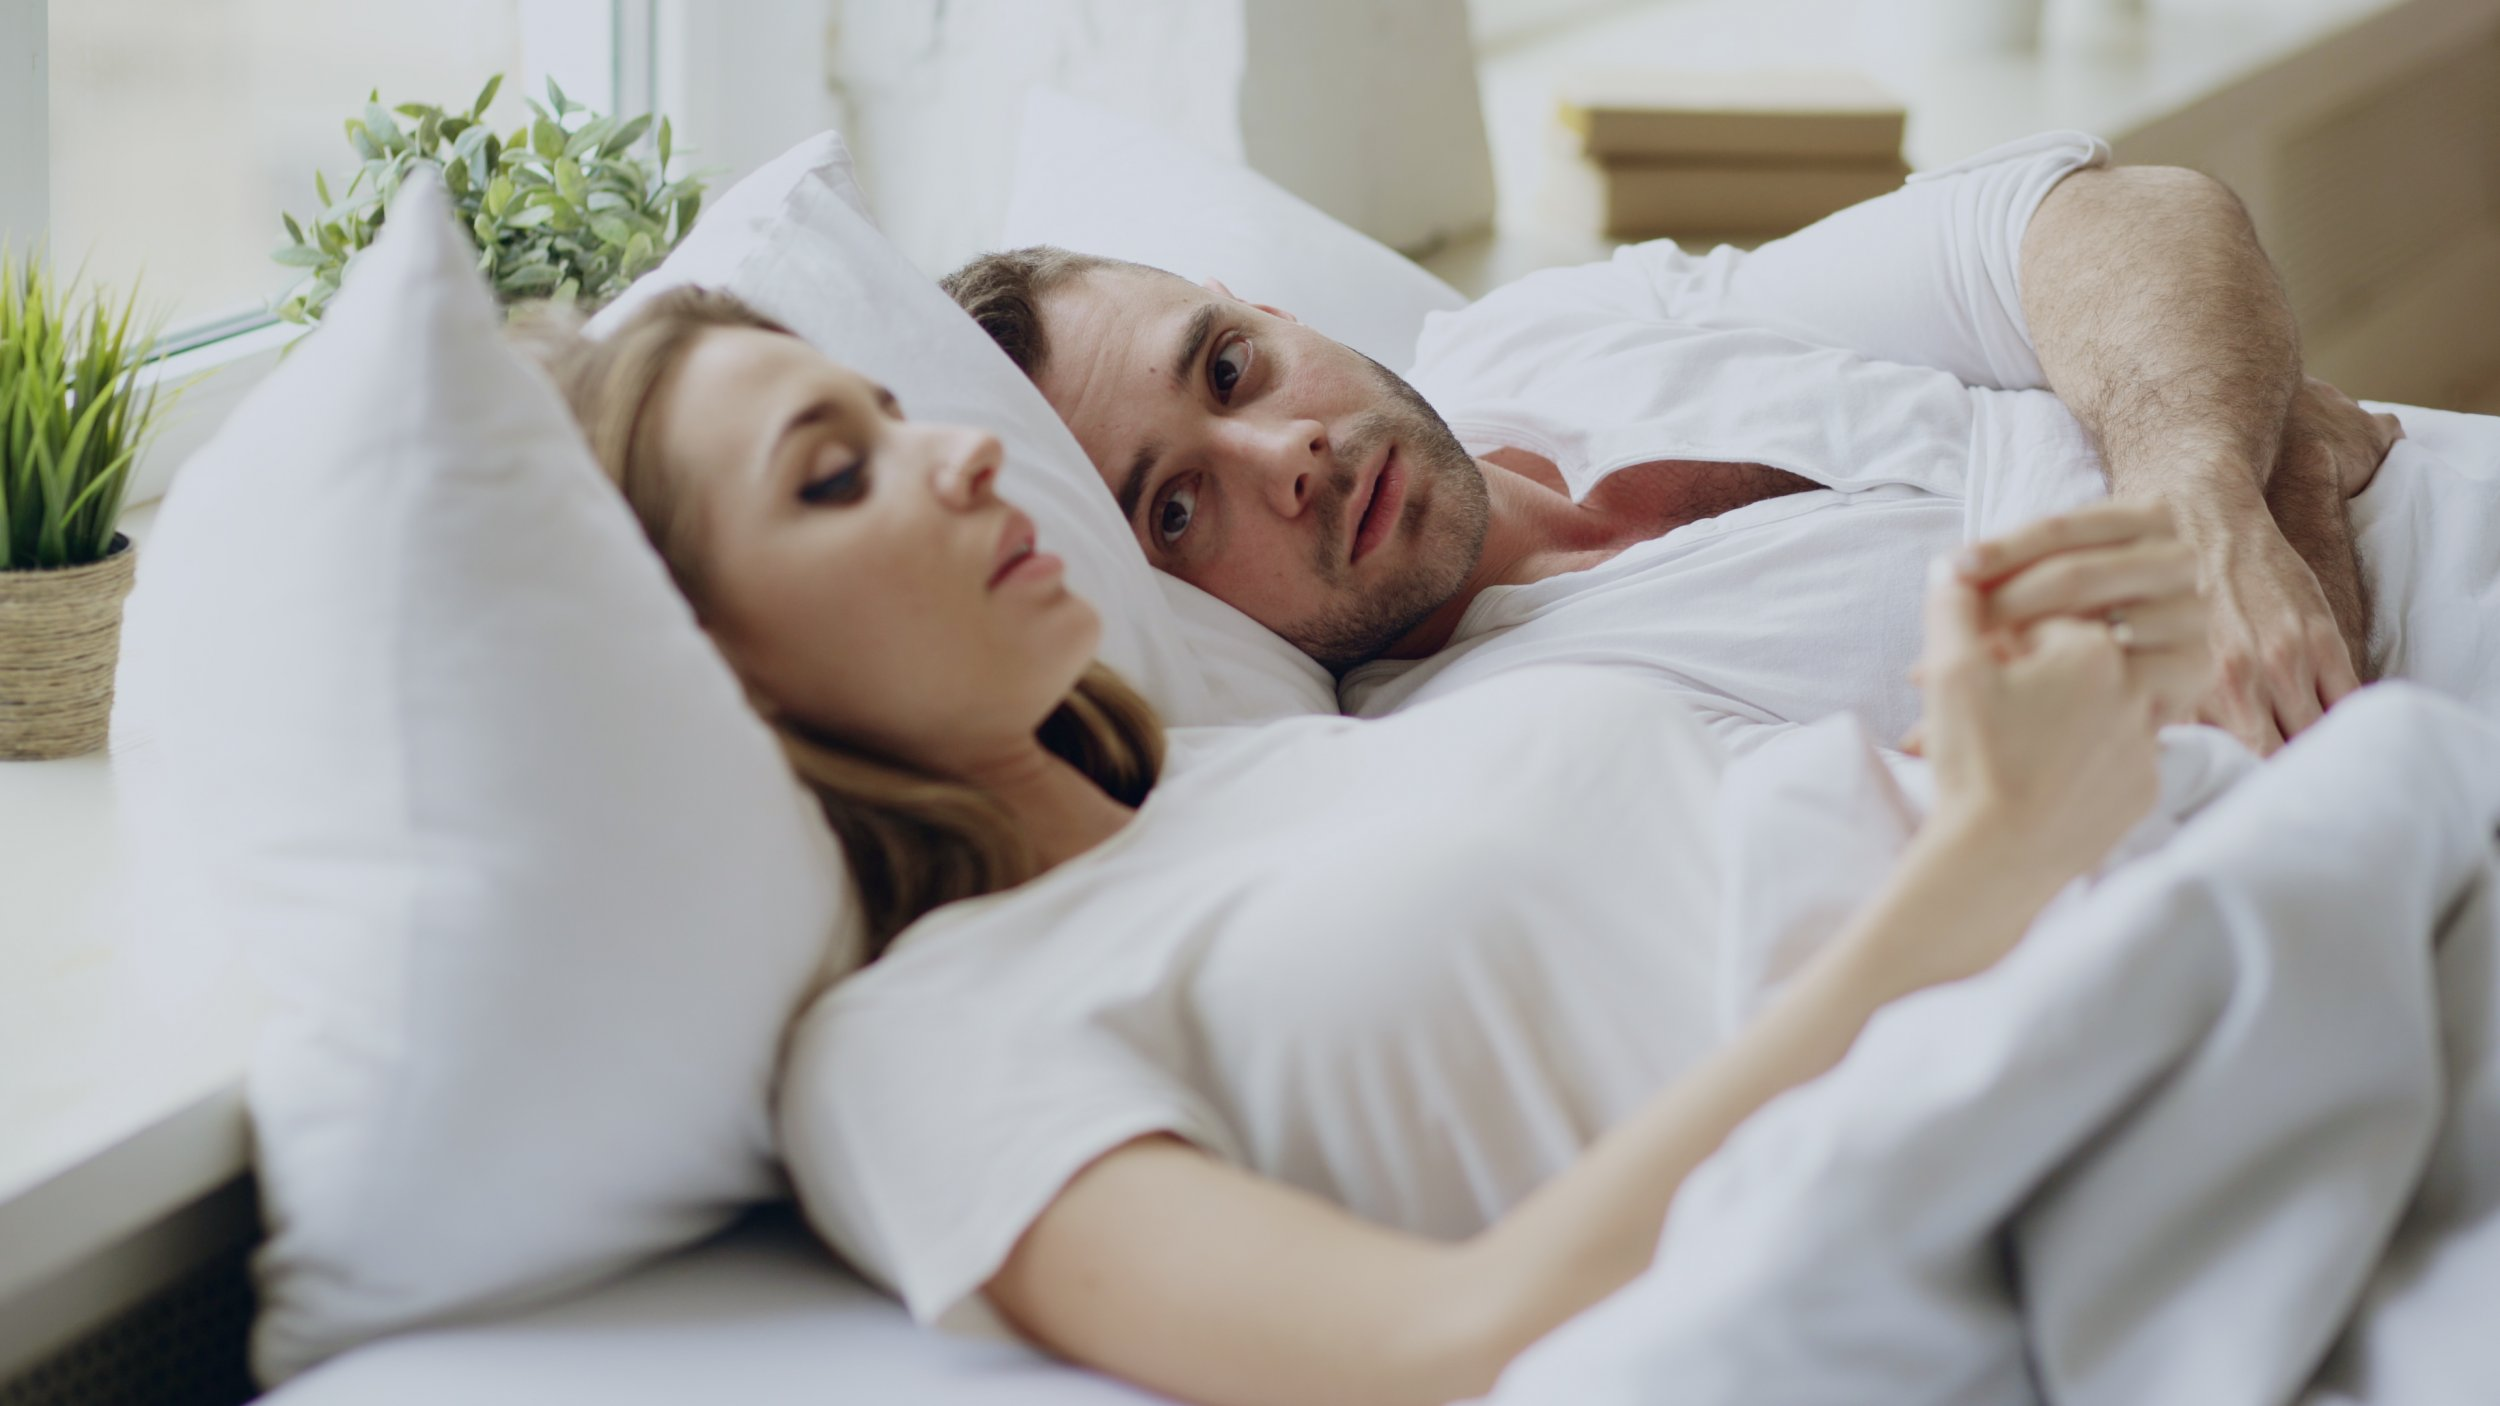 couple, in bed, relationship